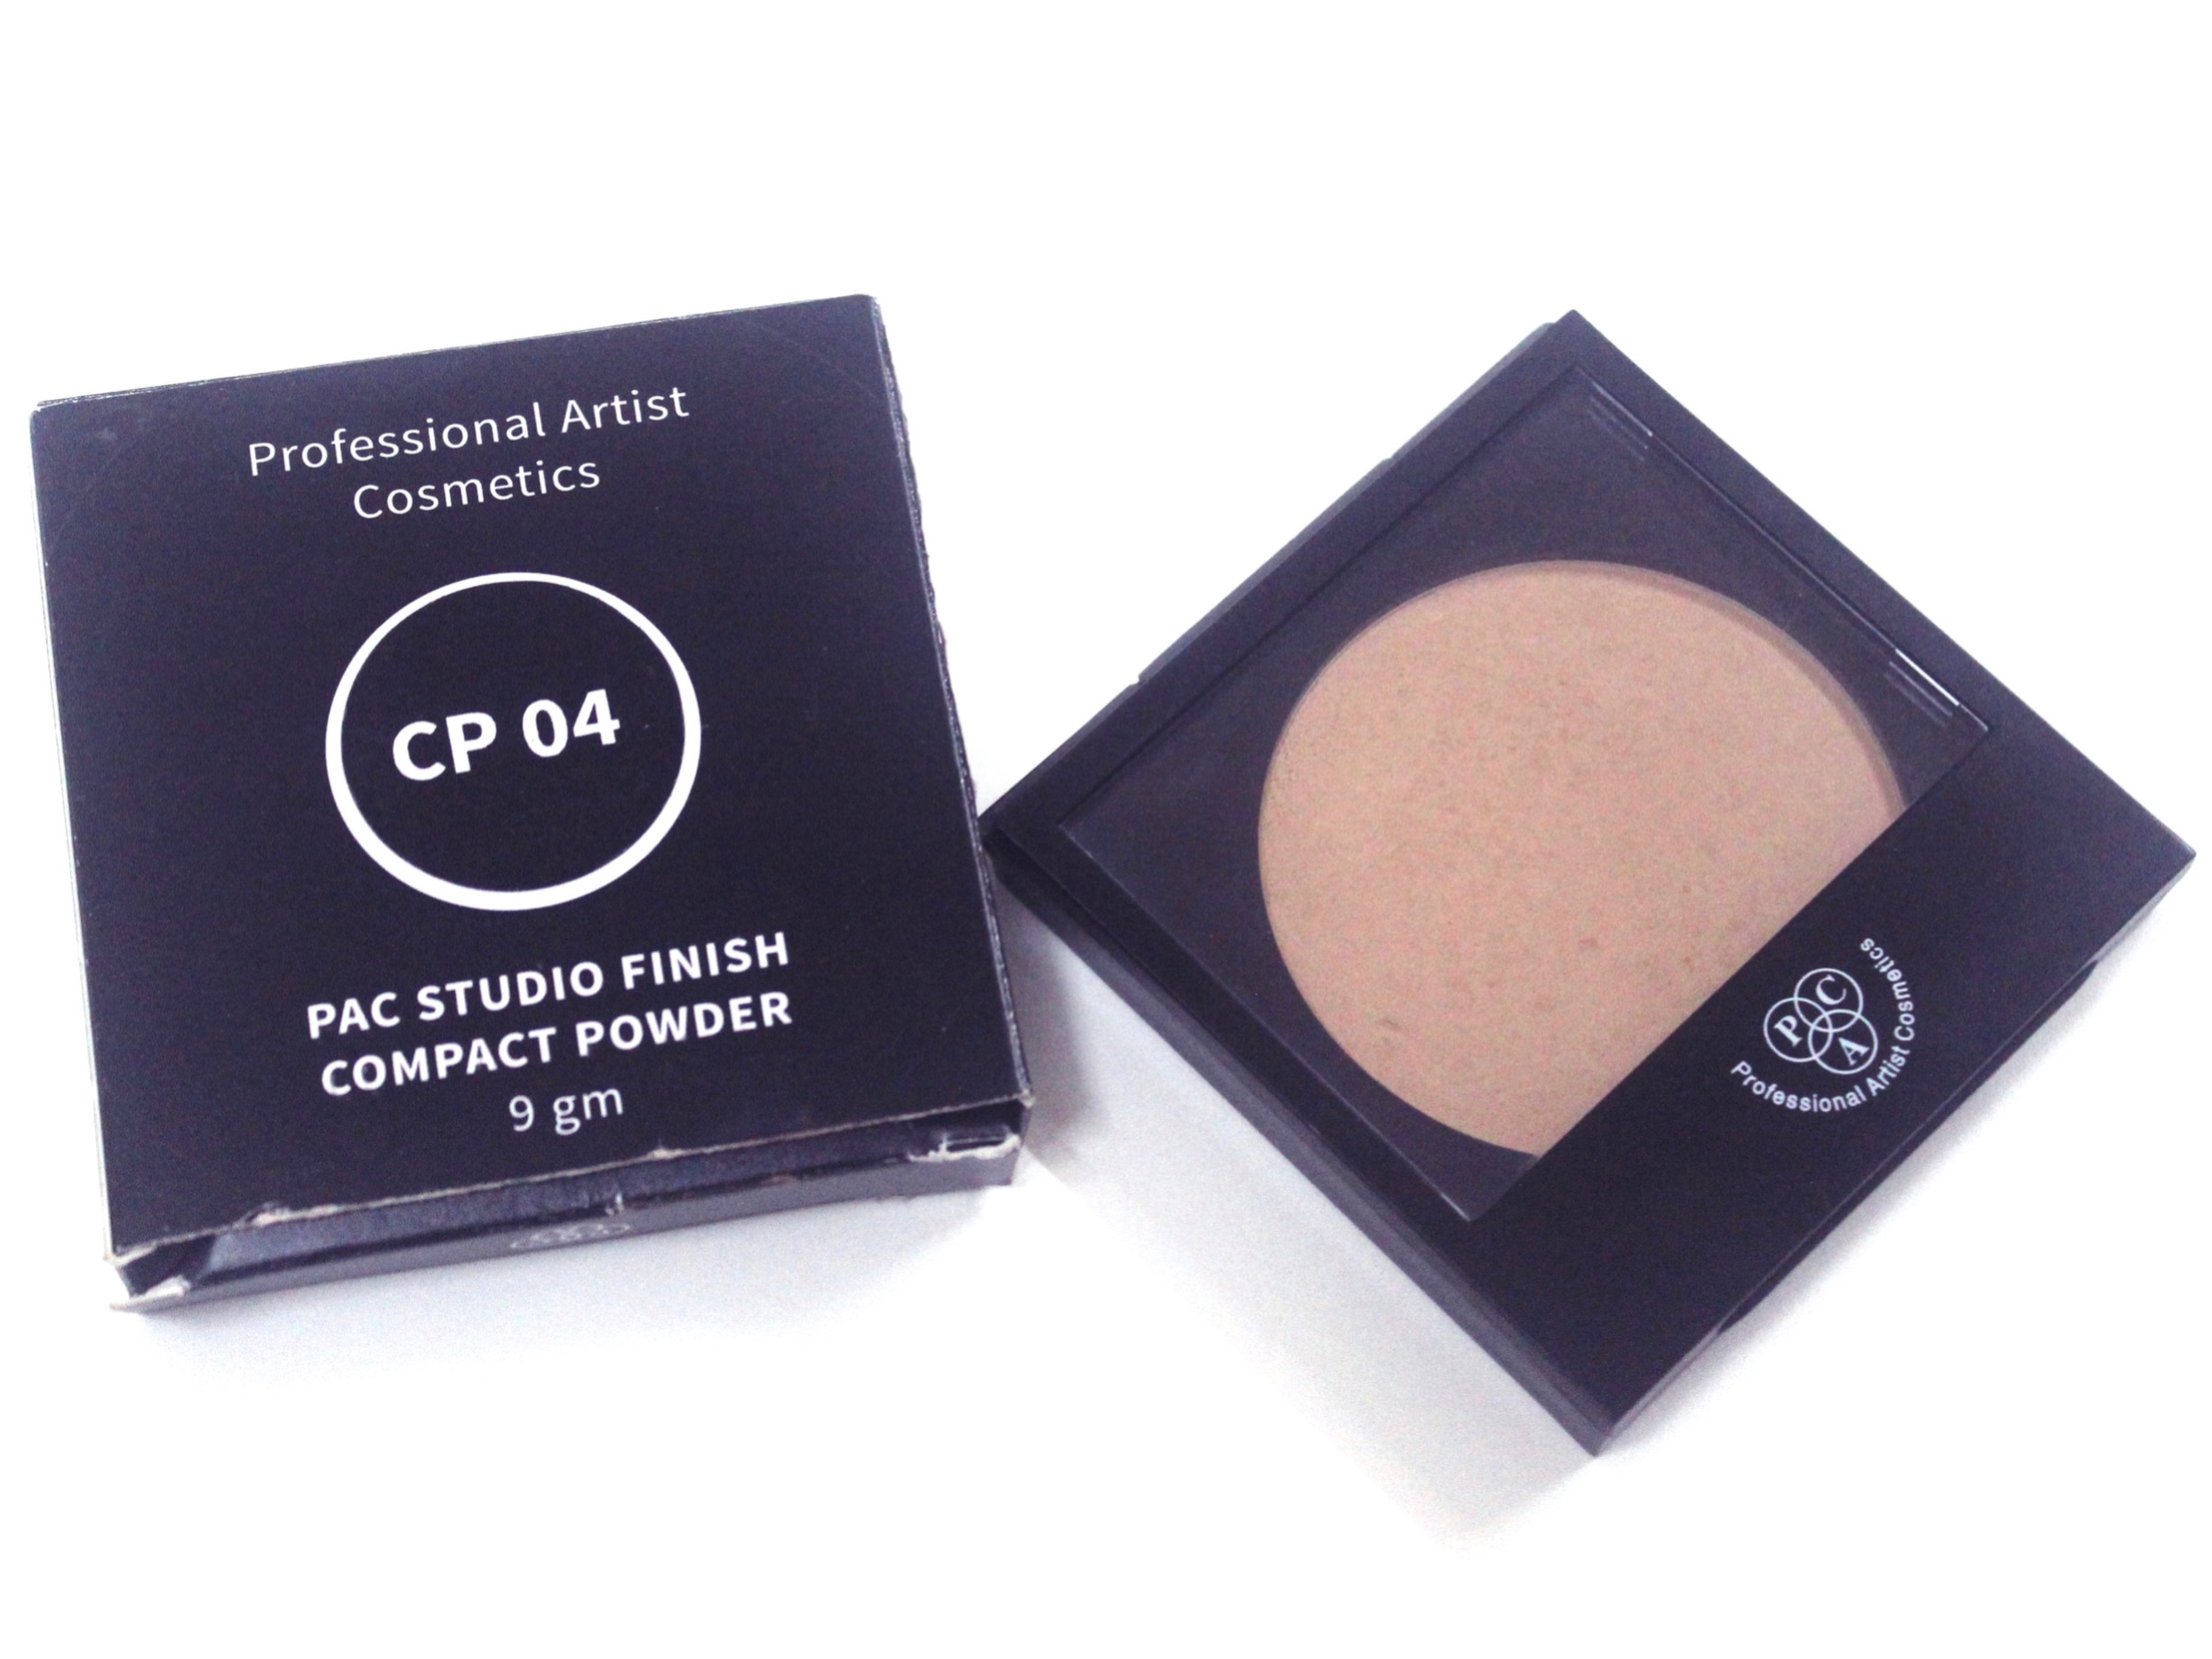 Pac Studio Finish Compact Powder Review Shades Swatches